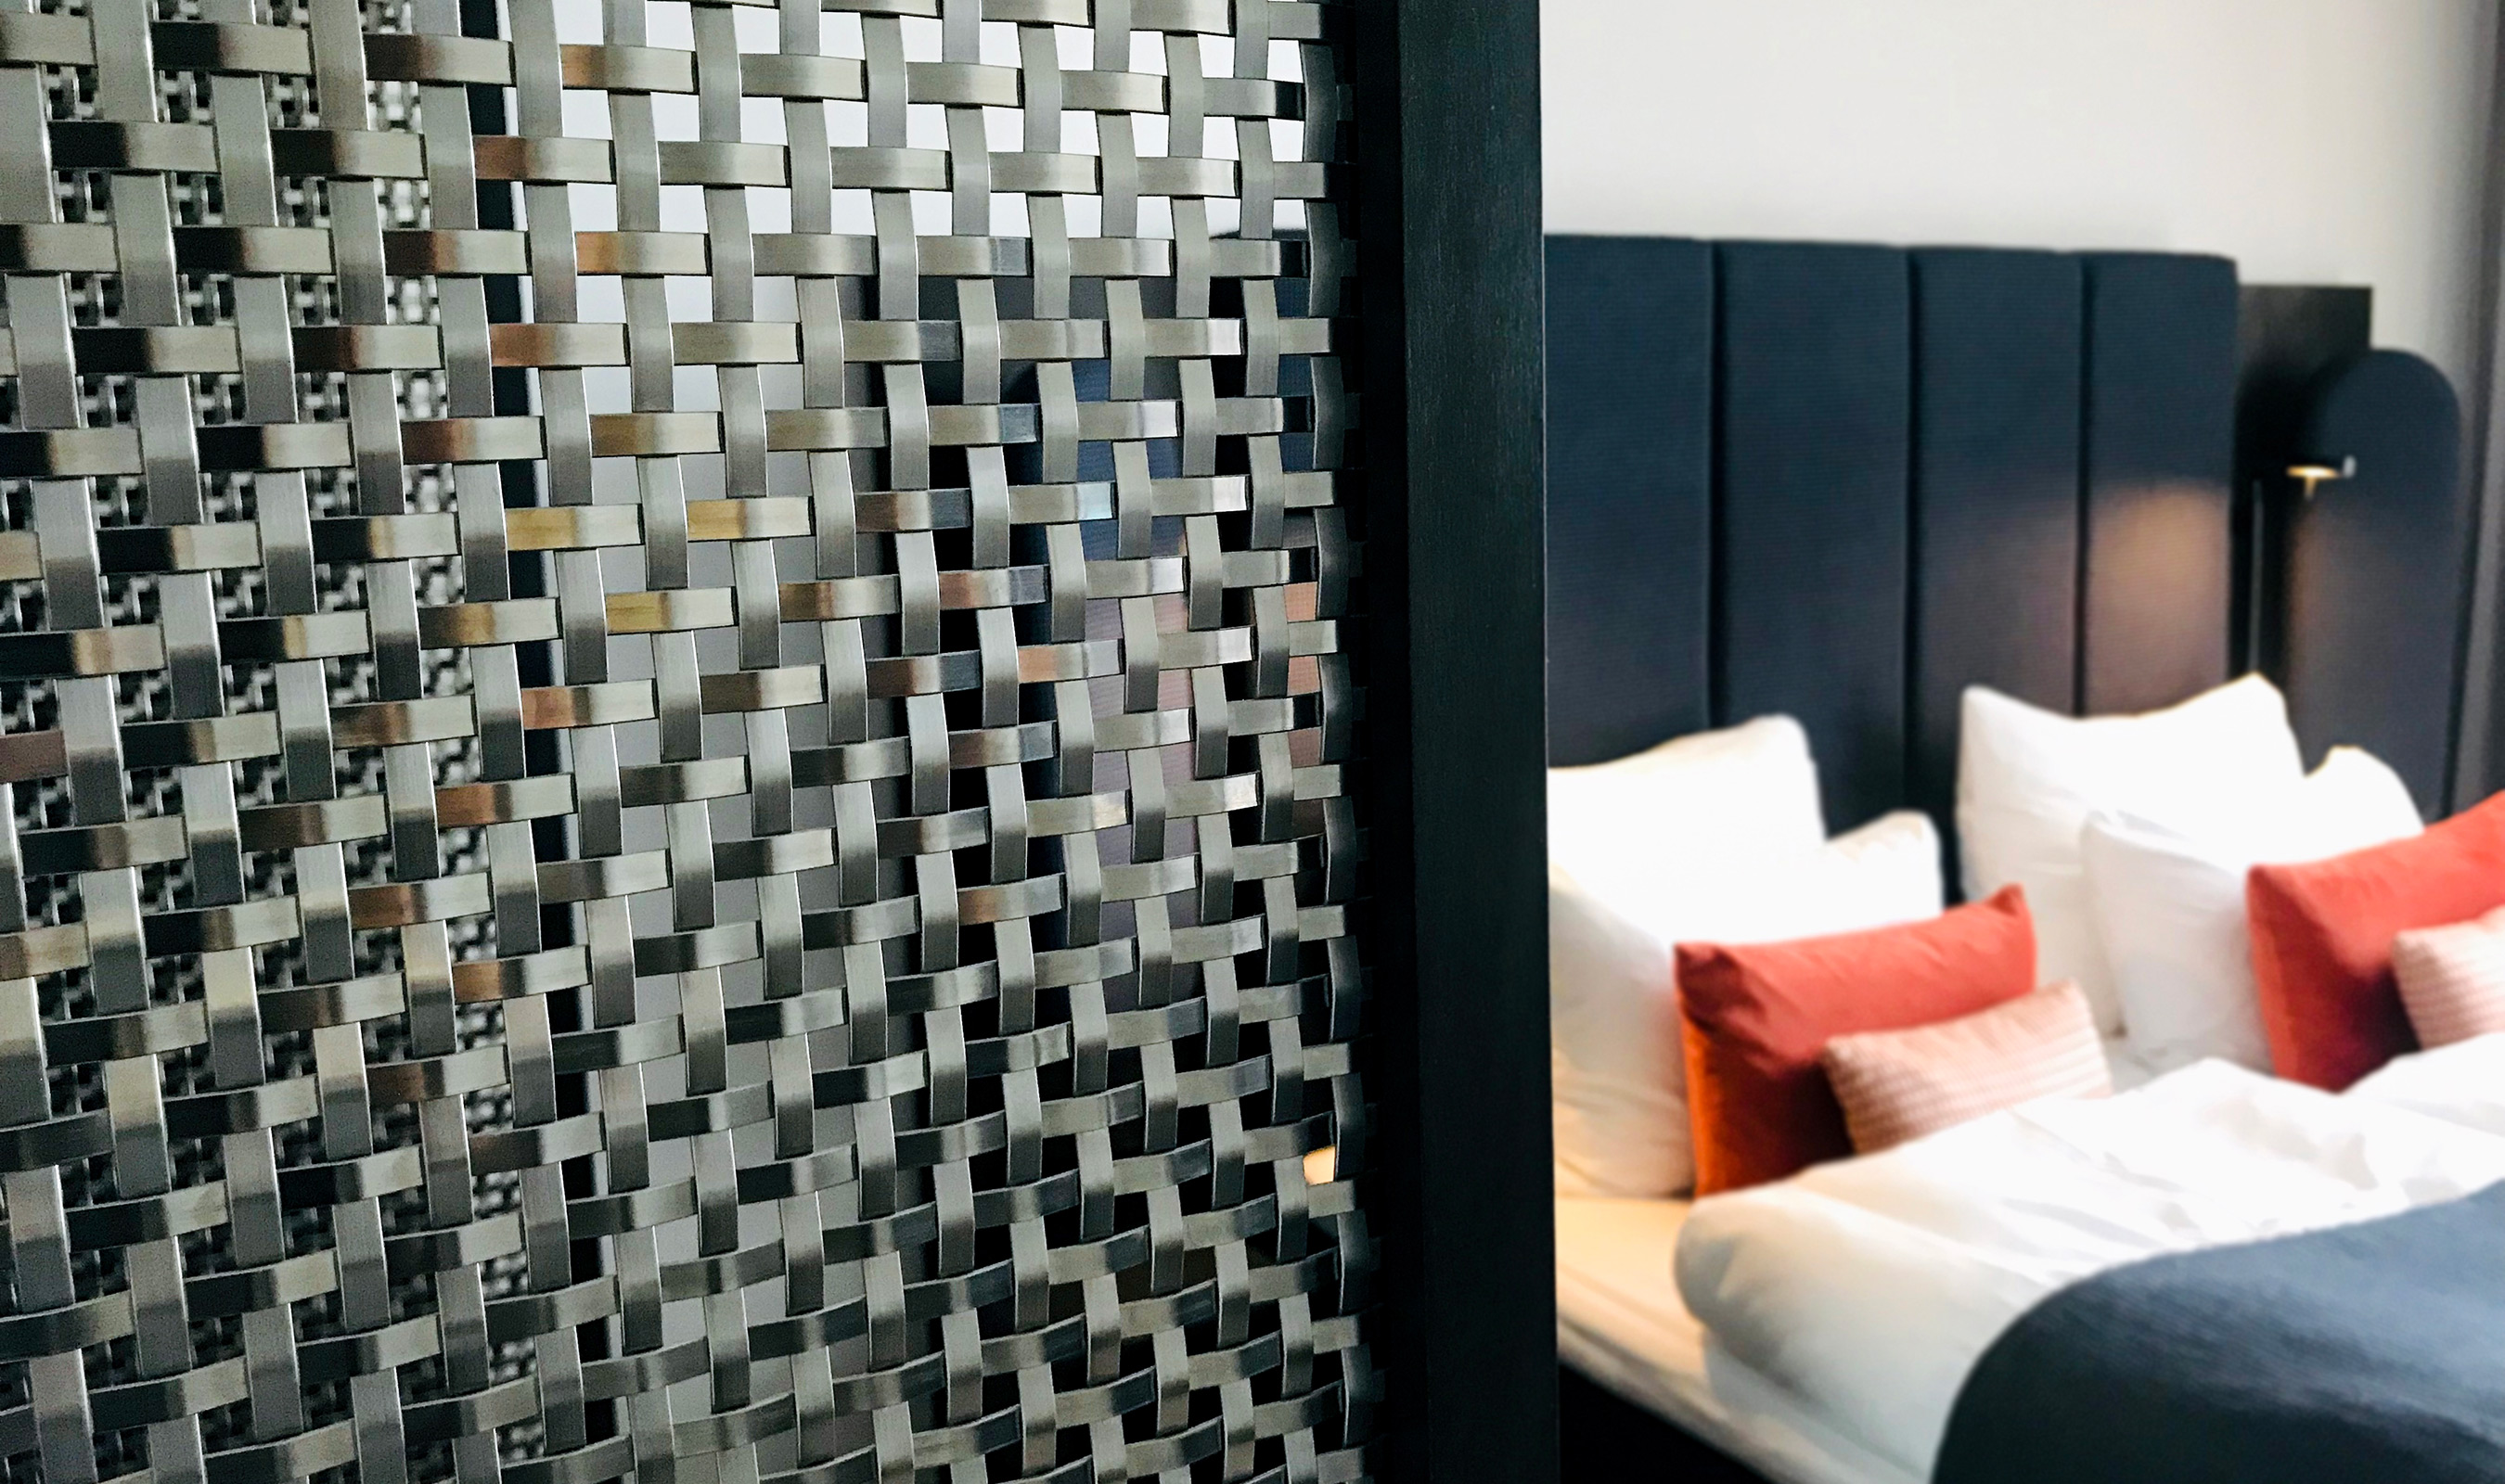 The reflective nature of S-30 adds a unique visual texture to the hotel rooms in the Clarion Hotel Oslo in Norway.